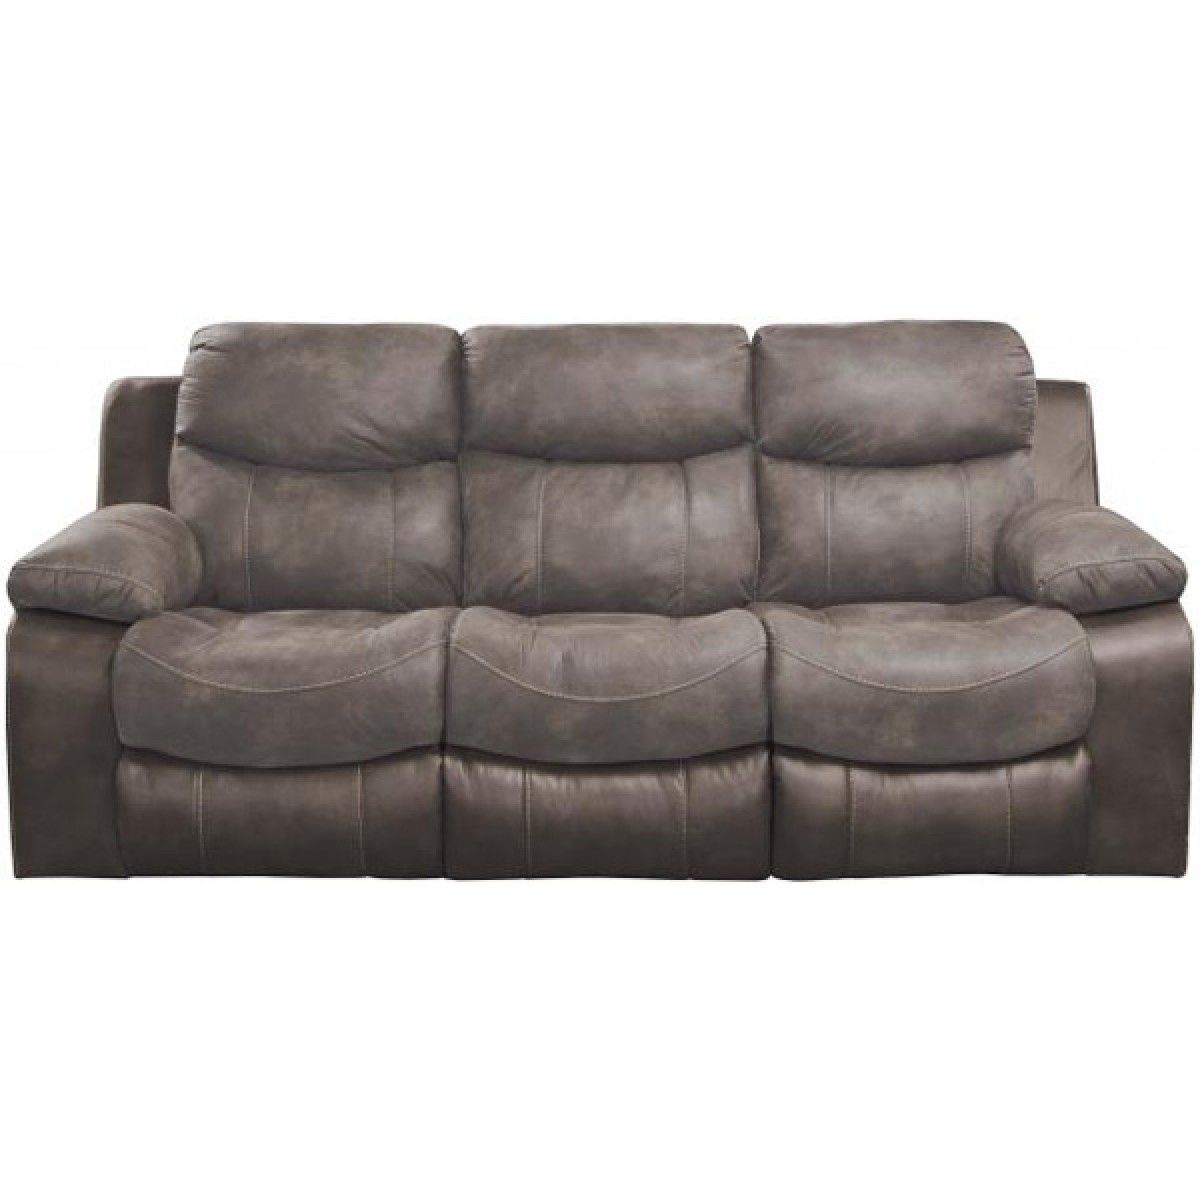 contemporary reclining sofa with drop down table picture-Lovely Reclining sofa with Drop Down Table Decoration